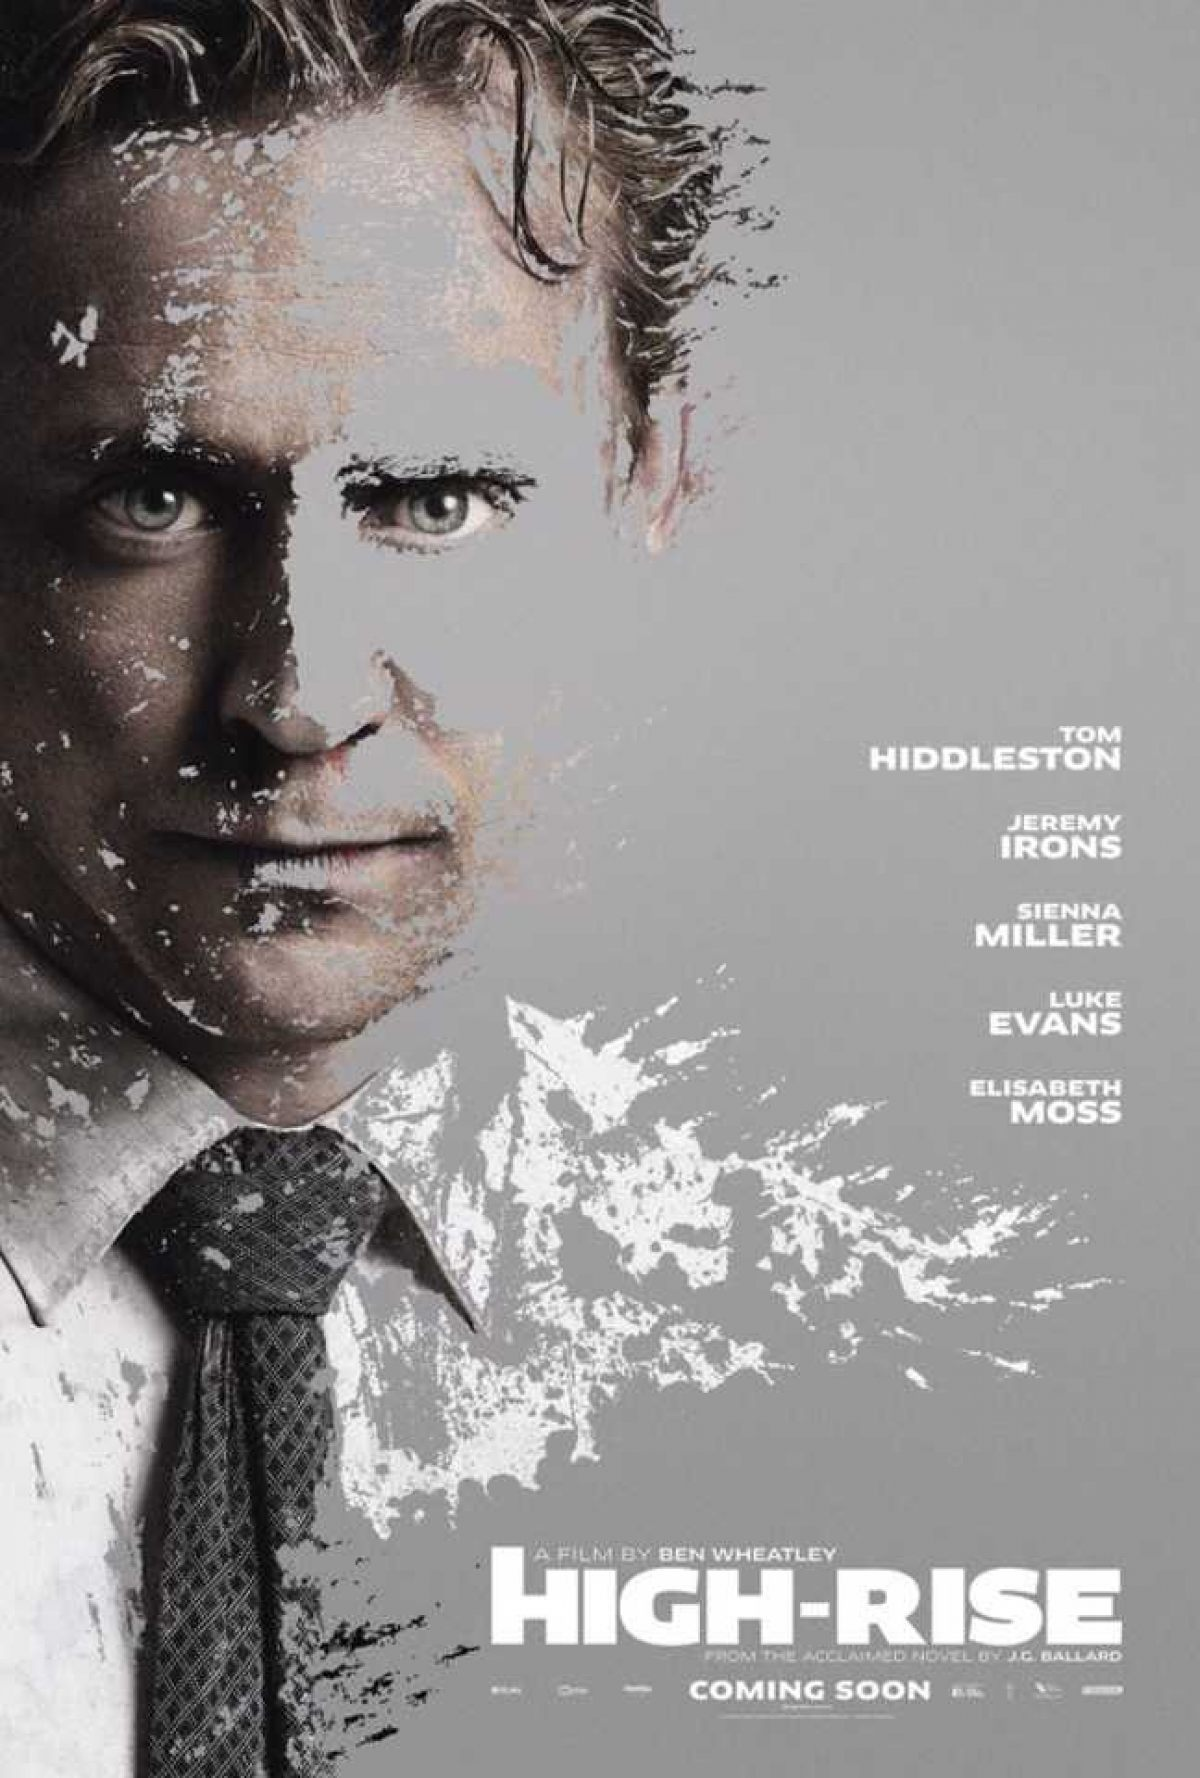 high rise paint poster.jpg?zoom=1 - Today on VOD: Harvest Lake and High-Rise